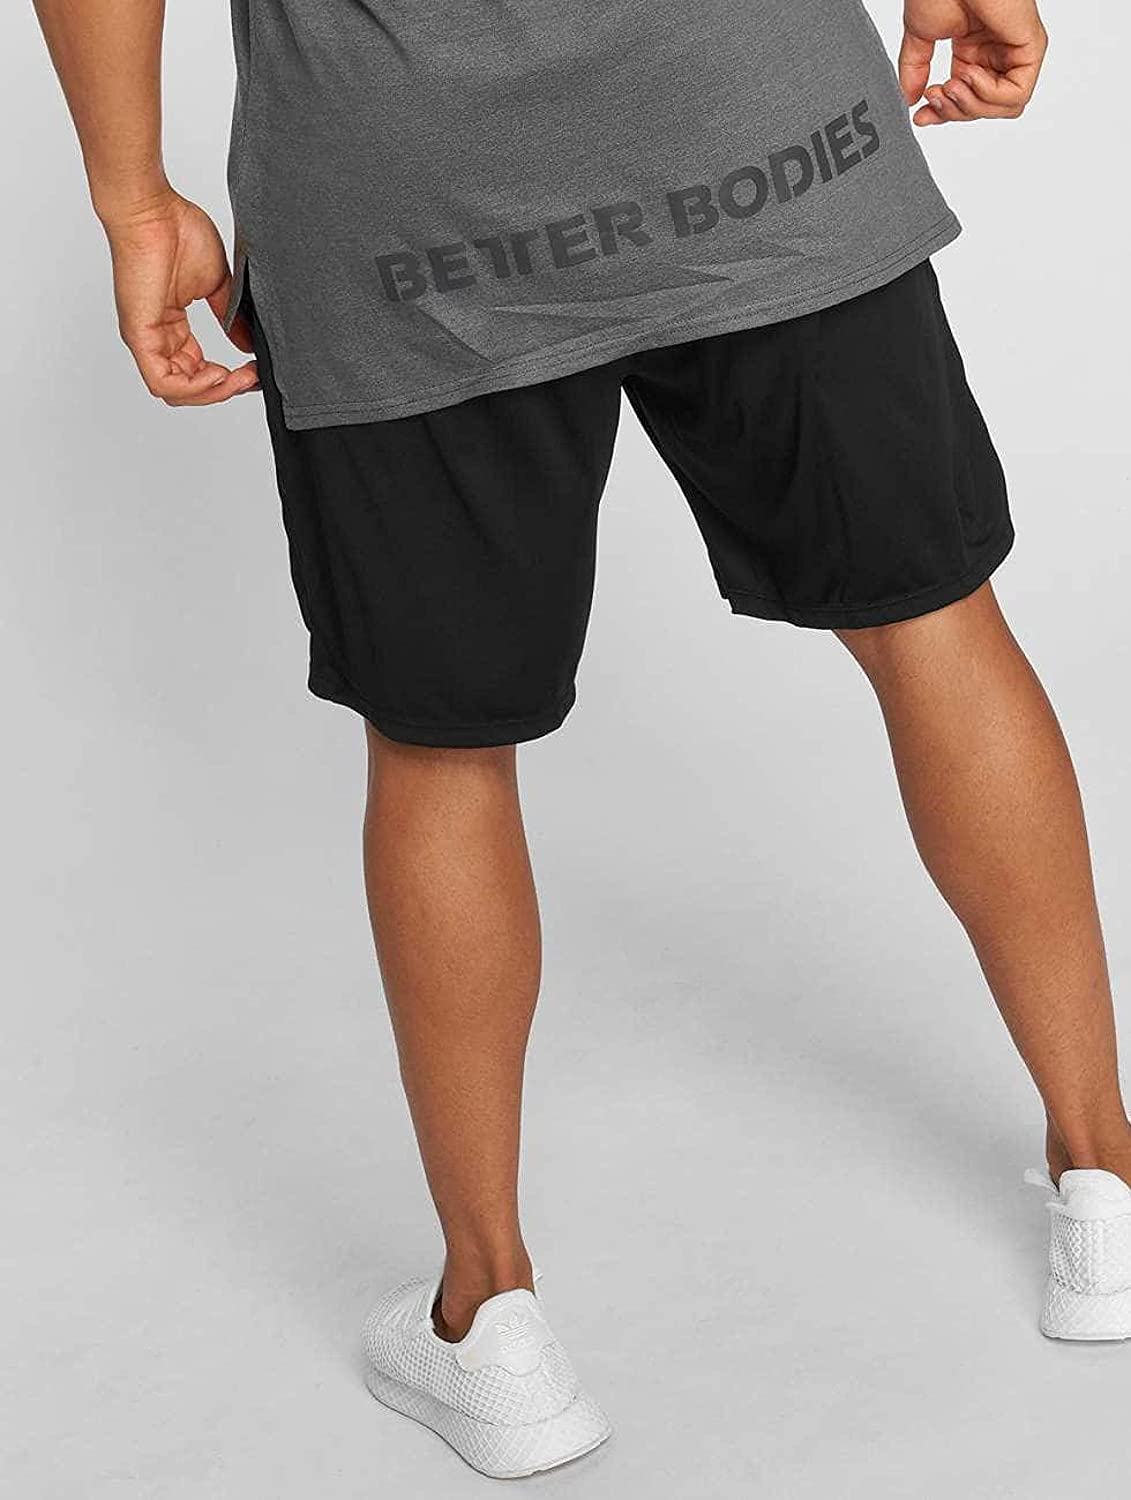 Global Gym Wear Better Bodies Loose Function Shorts